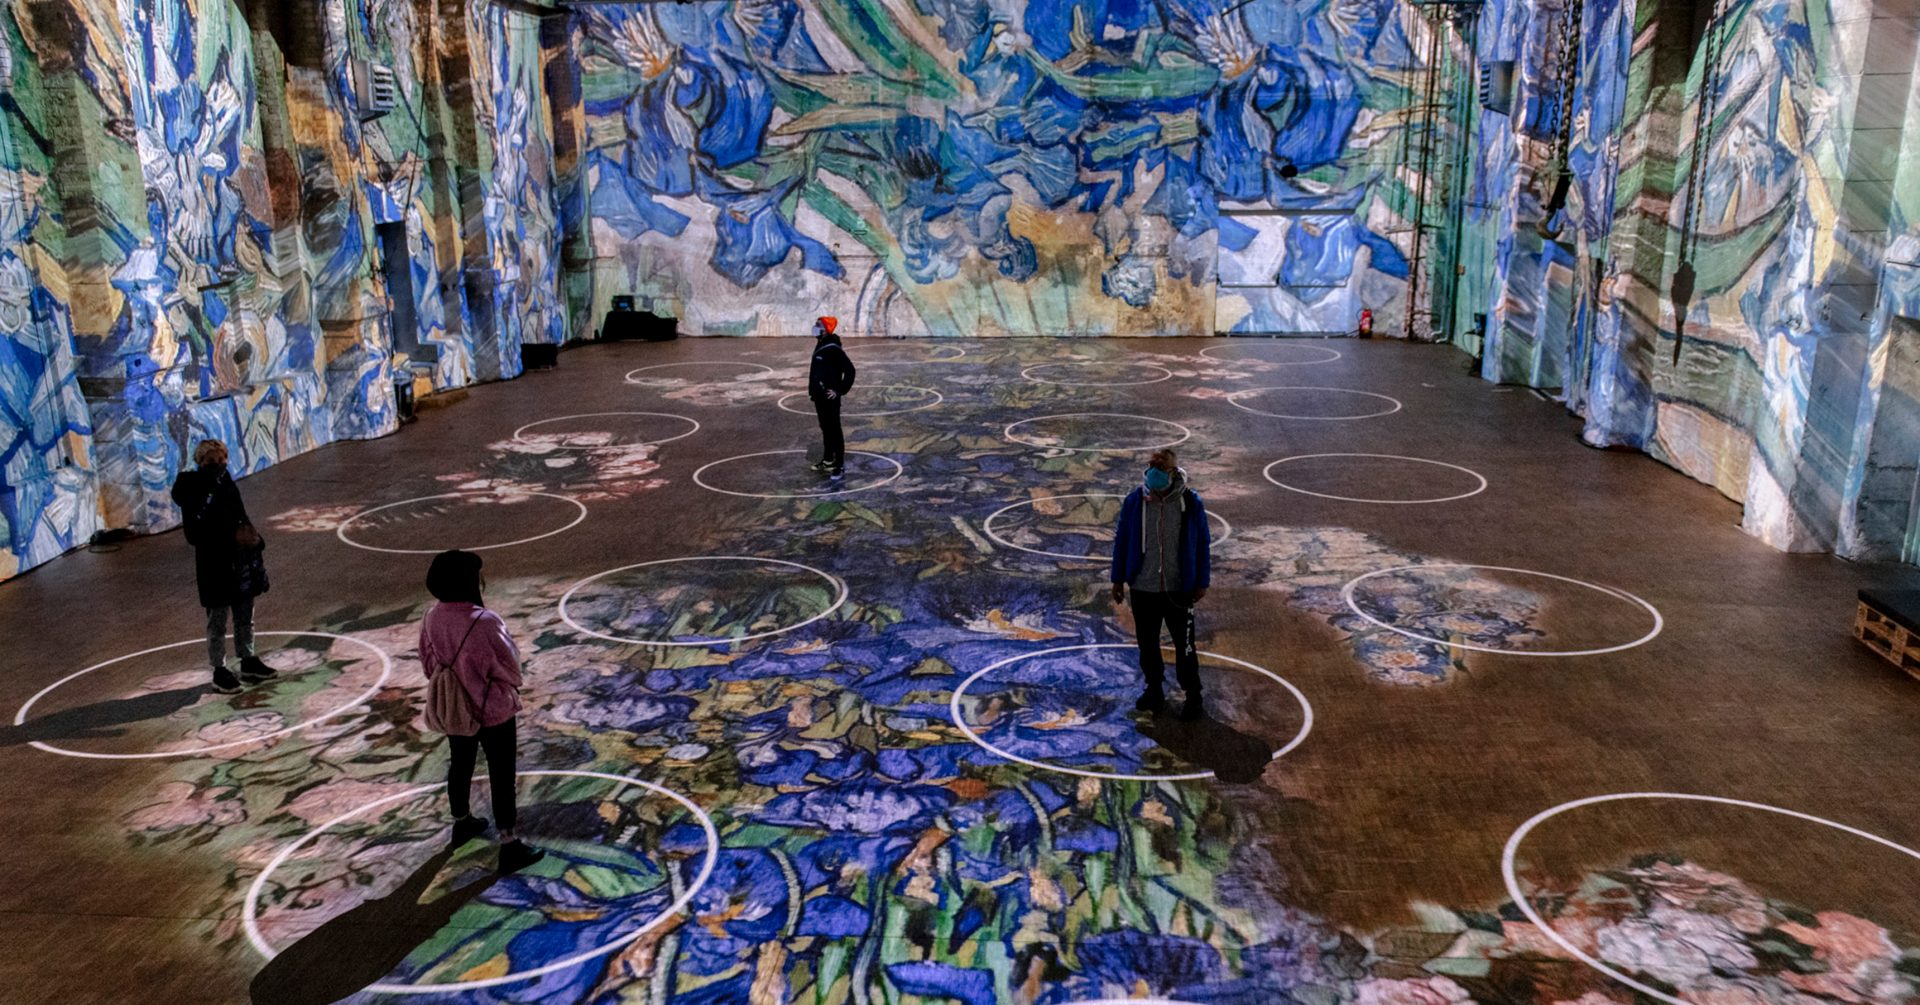 Toronto's Immersive van Gogh experience to include social distancing circles